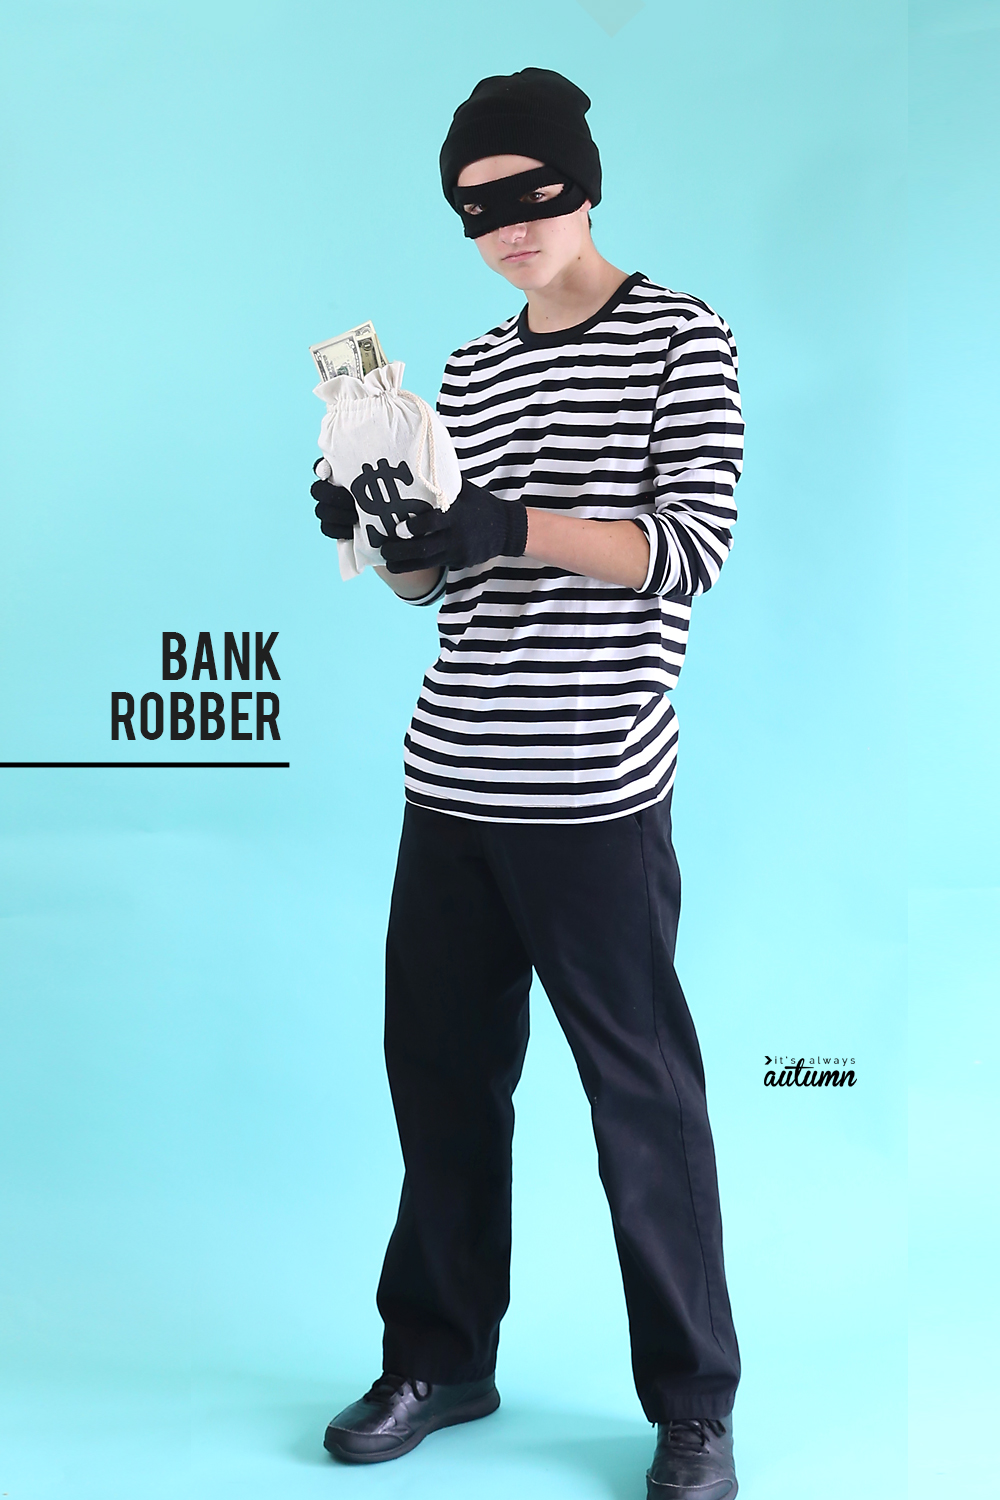 Diy Bank Robber Shirt 10 Cool Halloween Costumes For Teen Boys It S Always Autumn